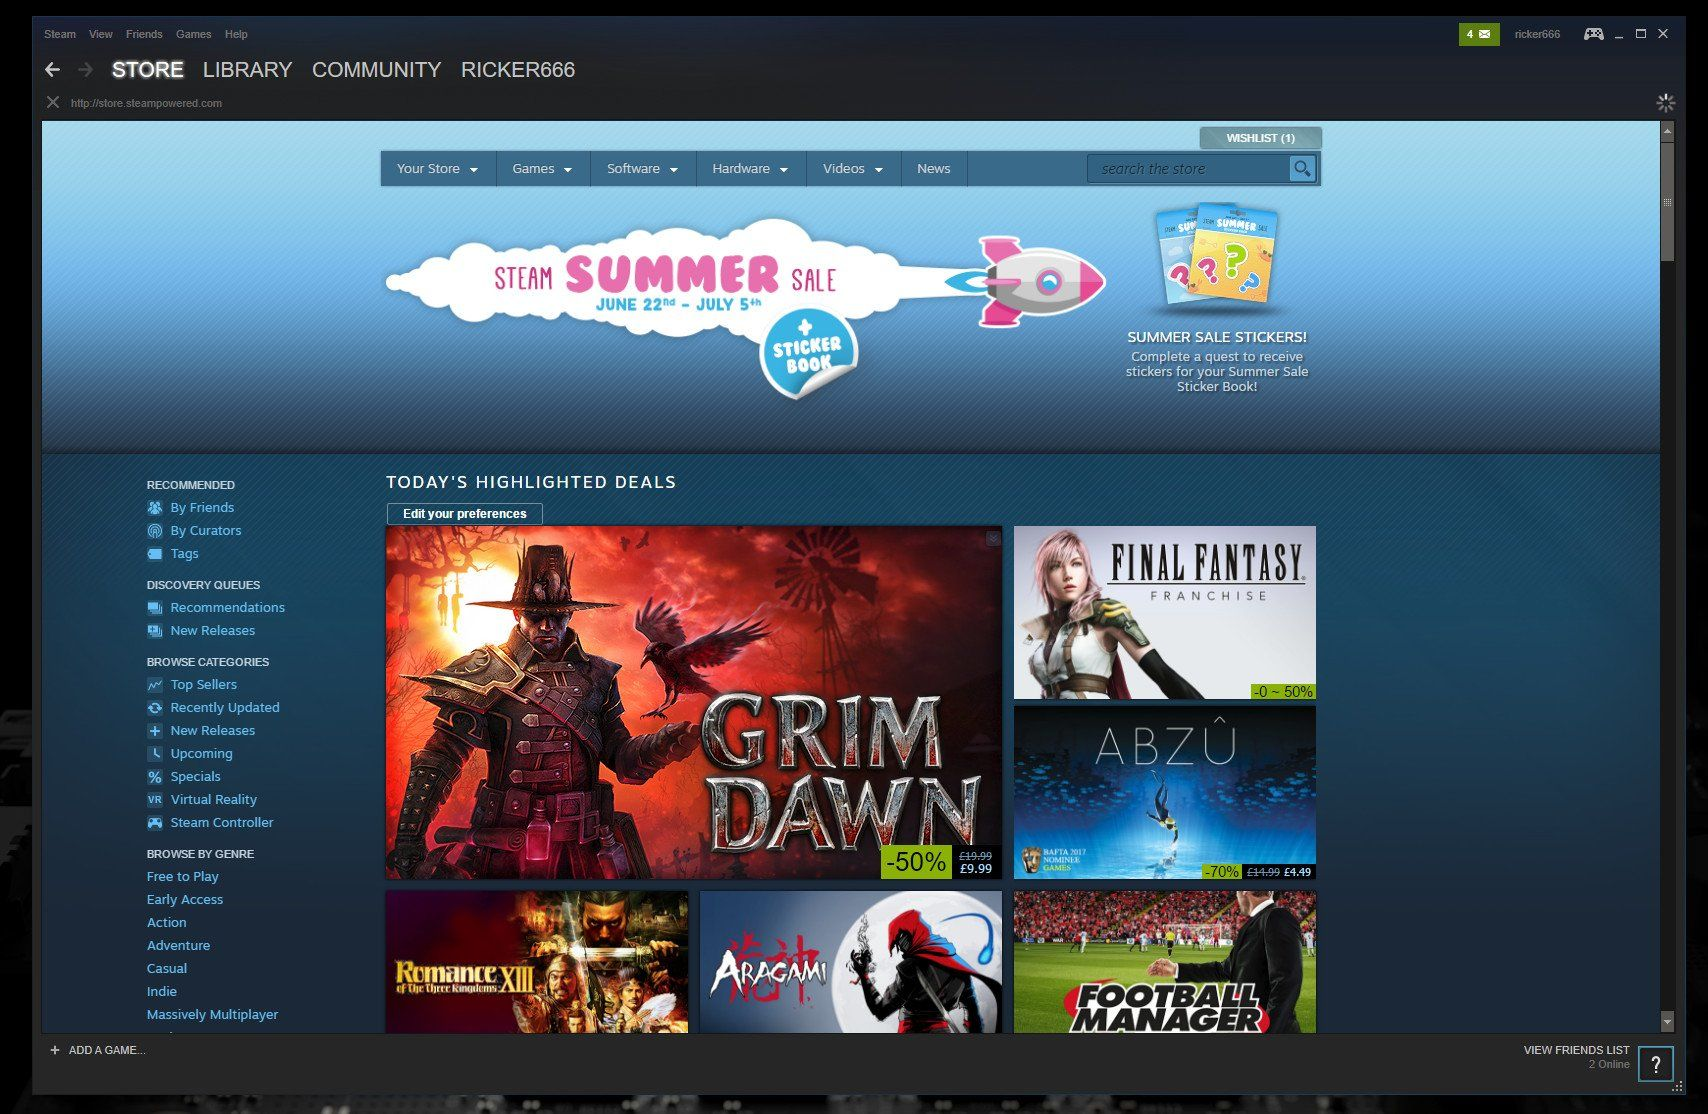 Steam's Summer Sale kicks off with massive discounts on tons of games